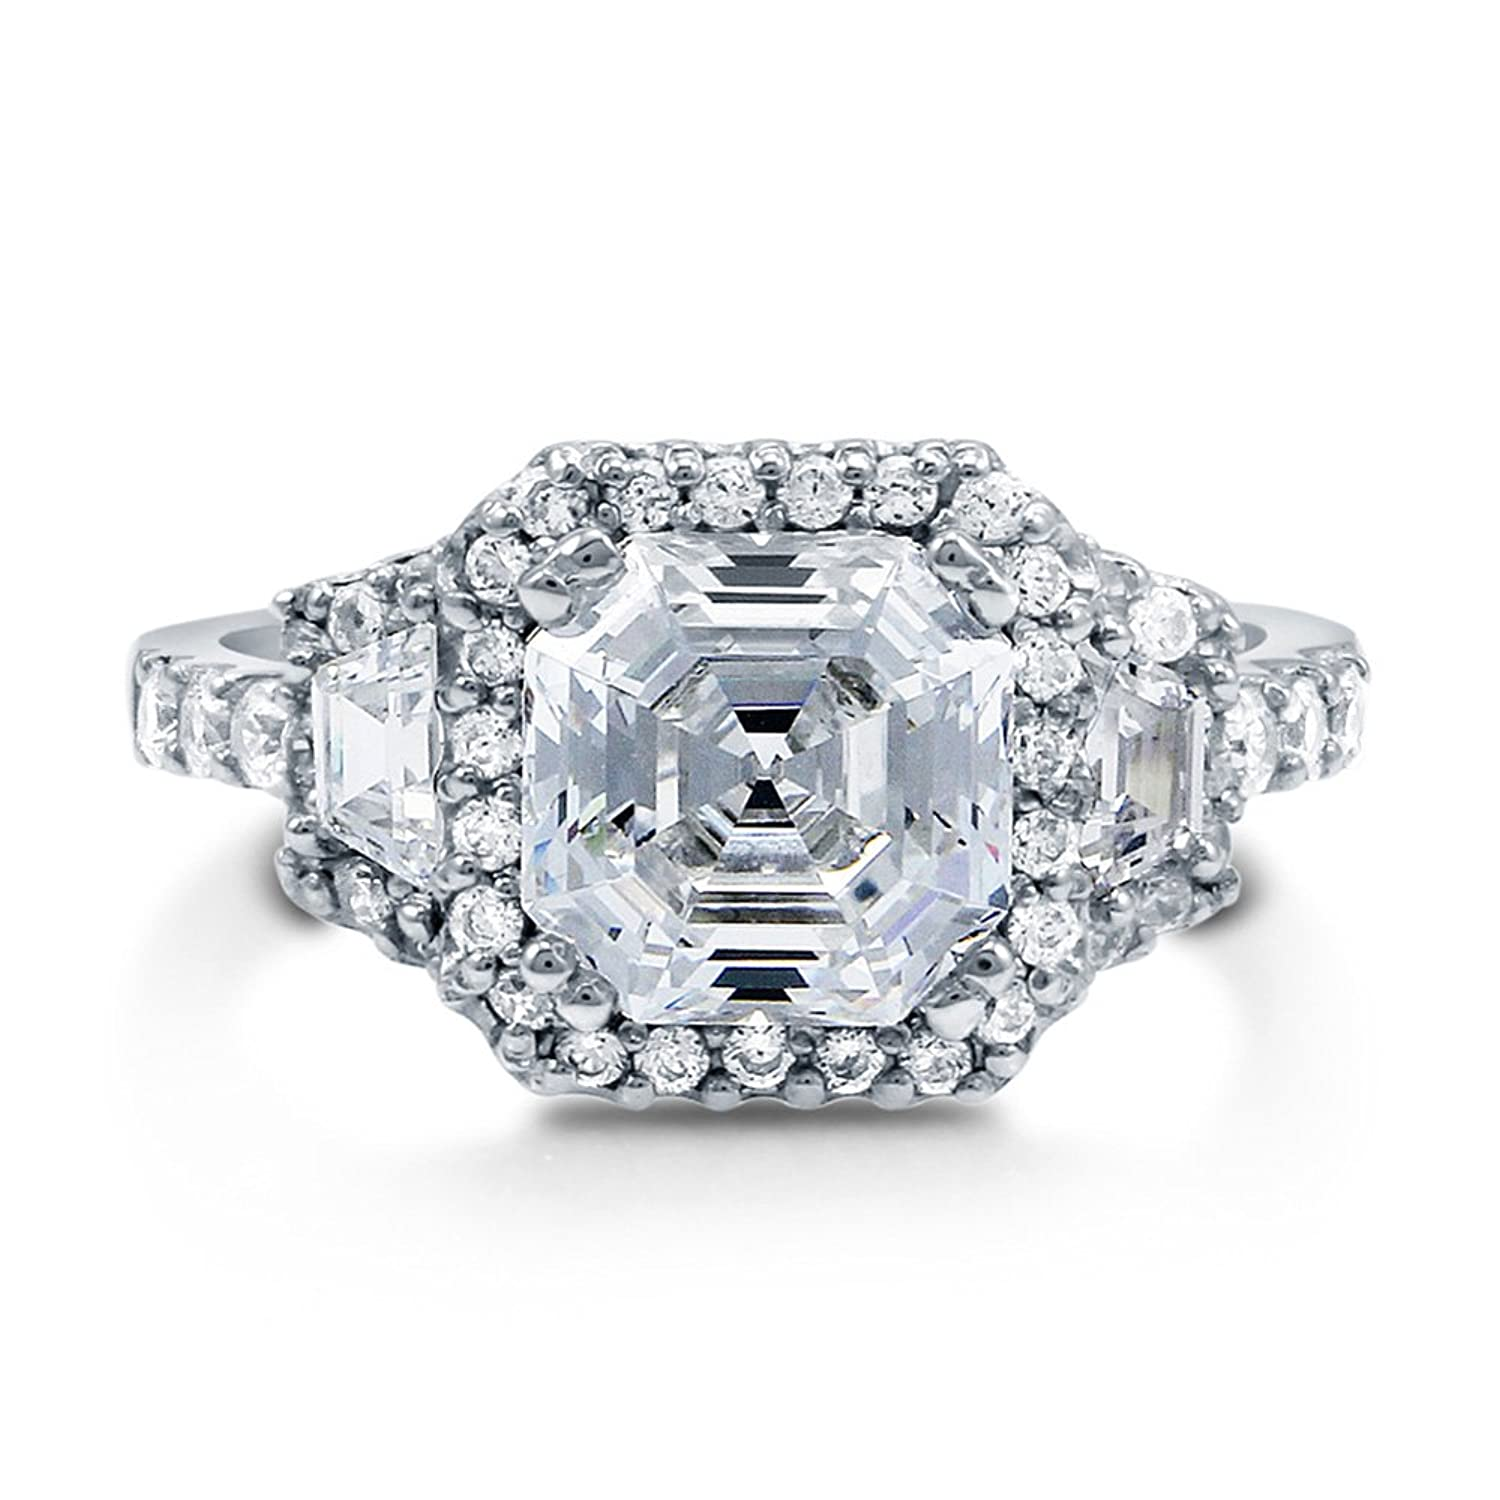 Amazon BERRICLE Rhodium Plated Sterling Silver Asscher Cut Cubic Zirconia CZ Halo Art Deco Engagement Ring Jewelry